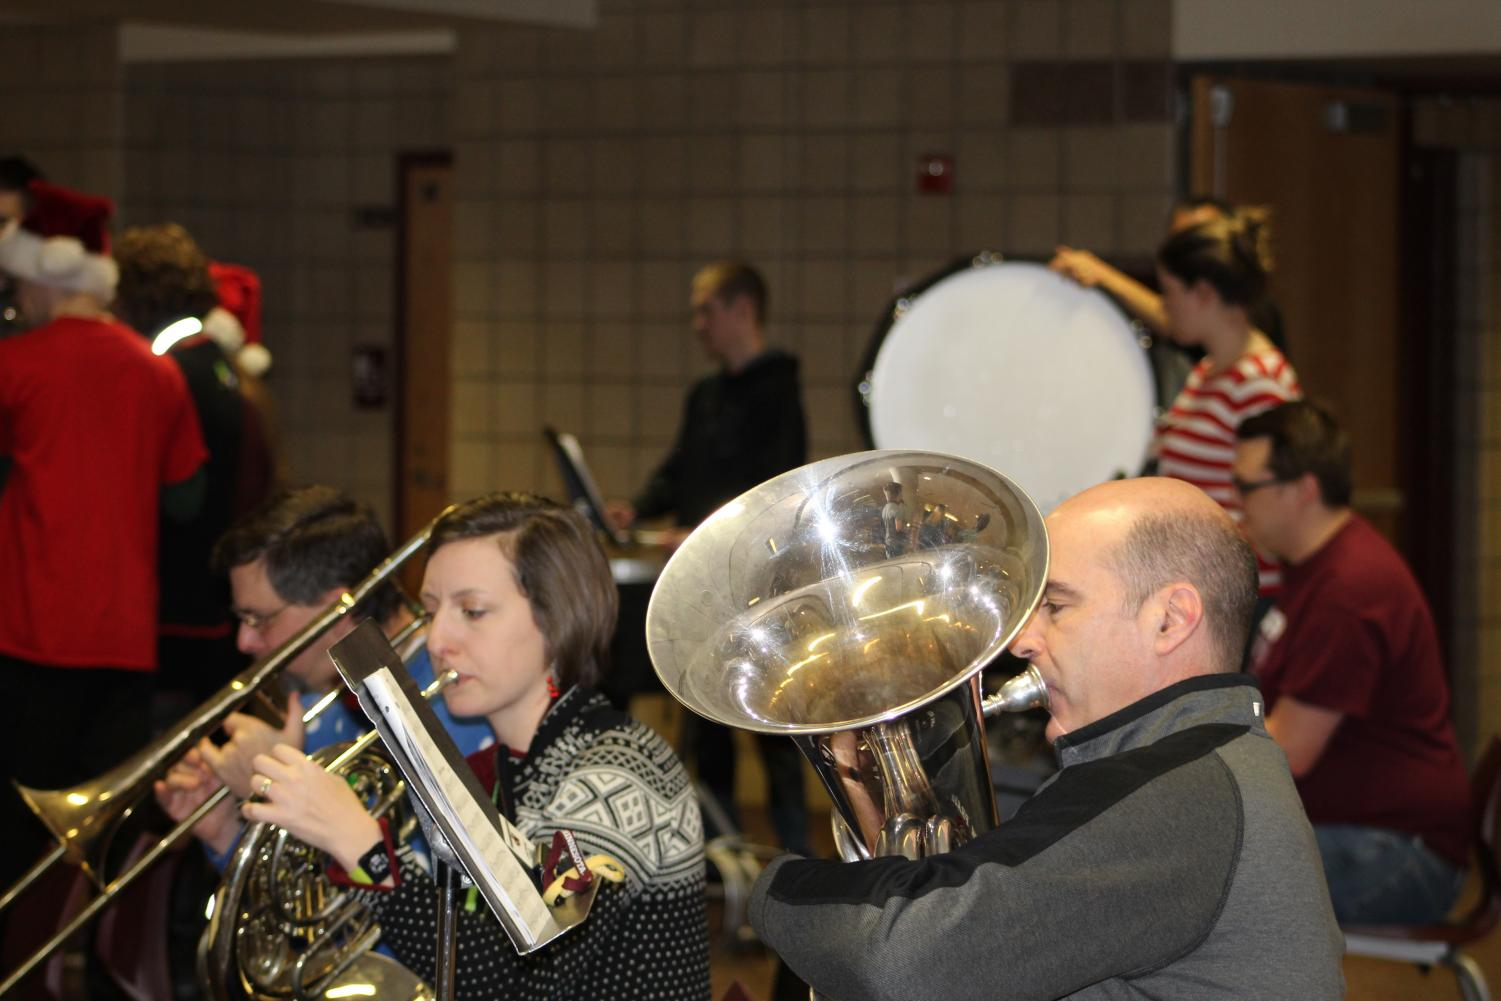 Staff joined students to bring holiday cheer the morning of Friday, December 20.